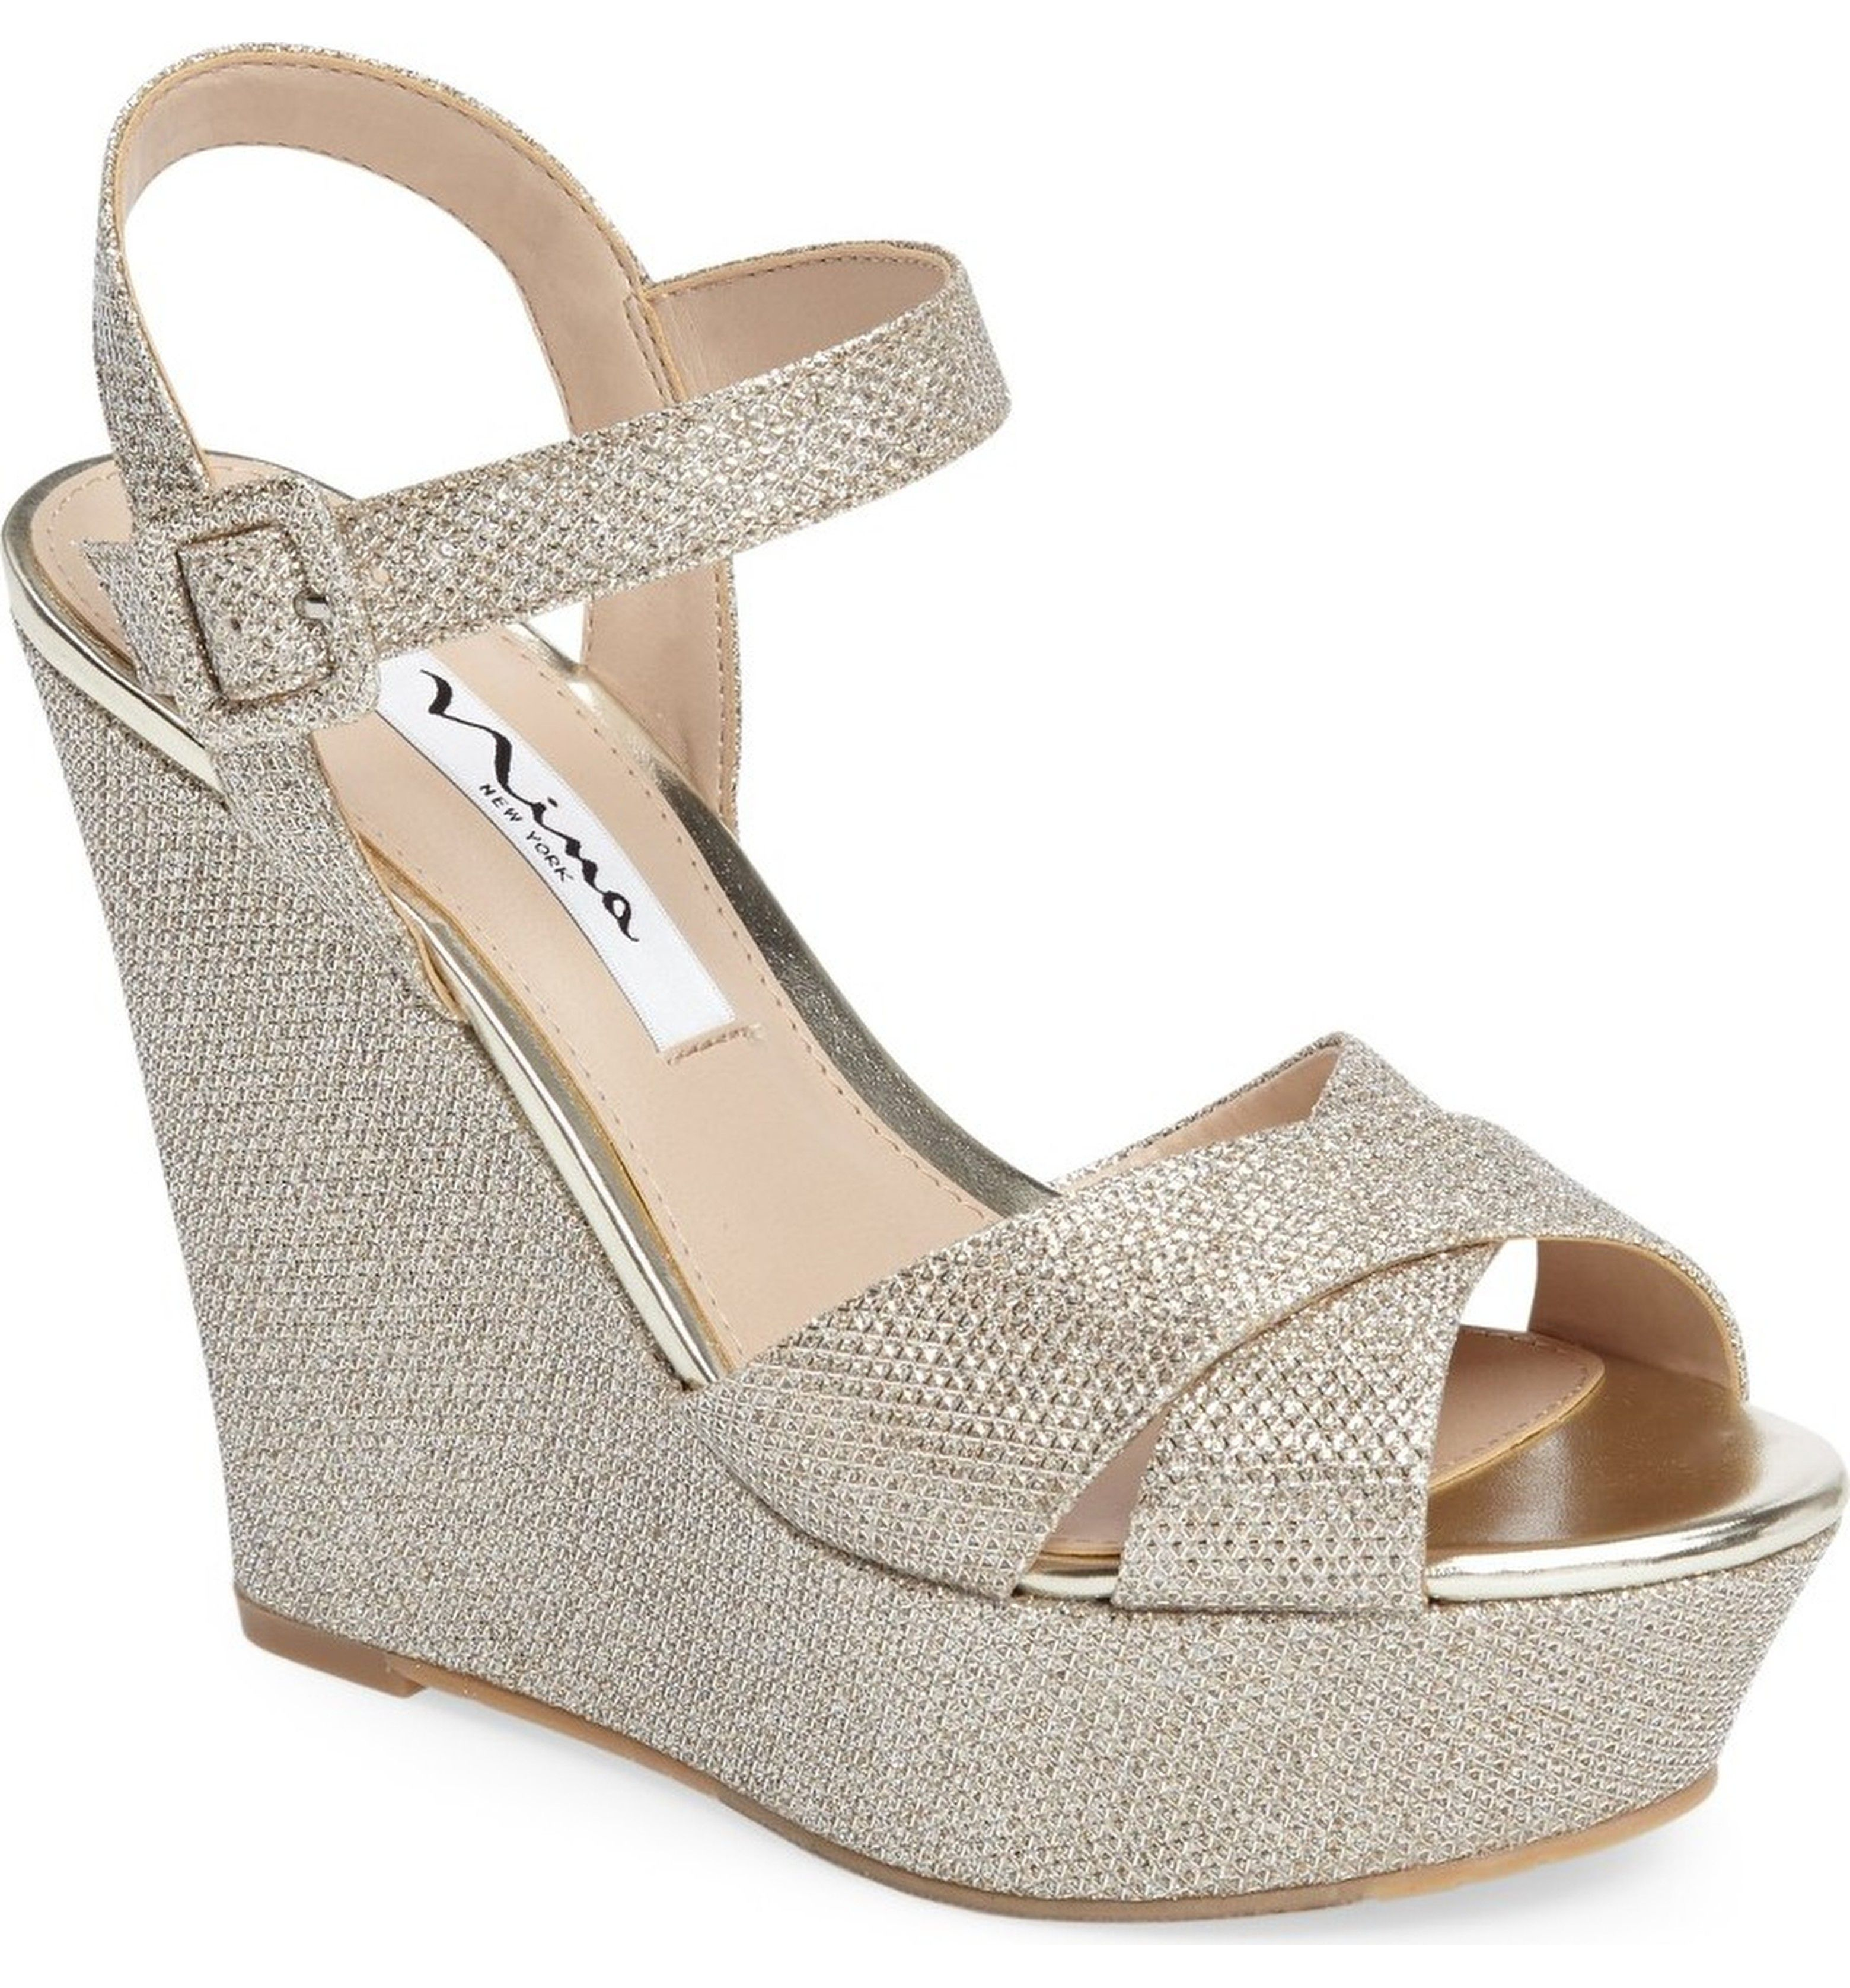 Nina Womens Jinjer Wedge Sandal